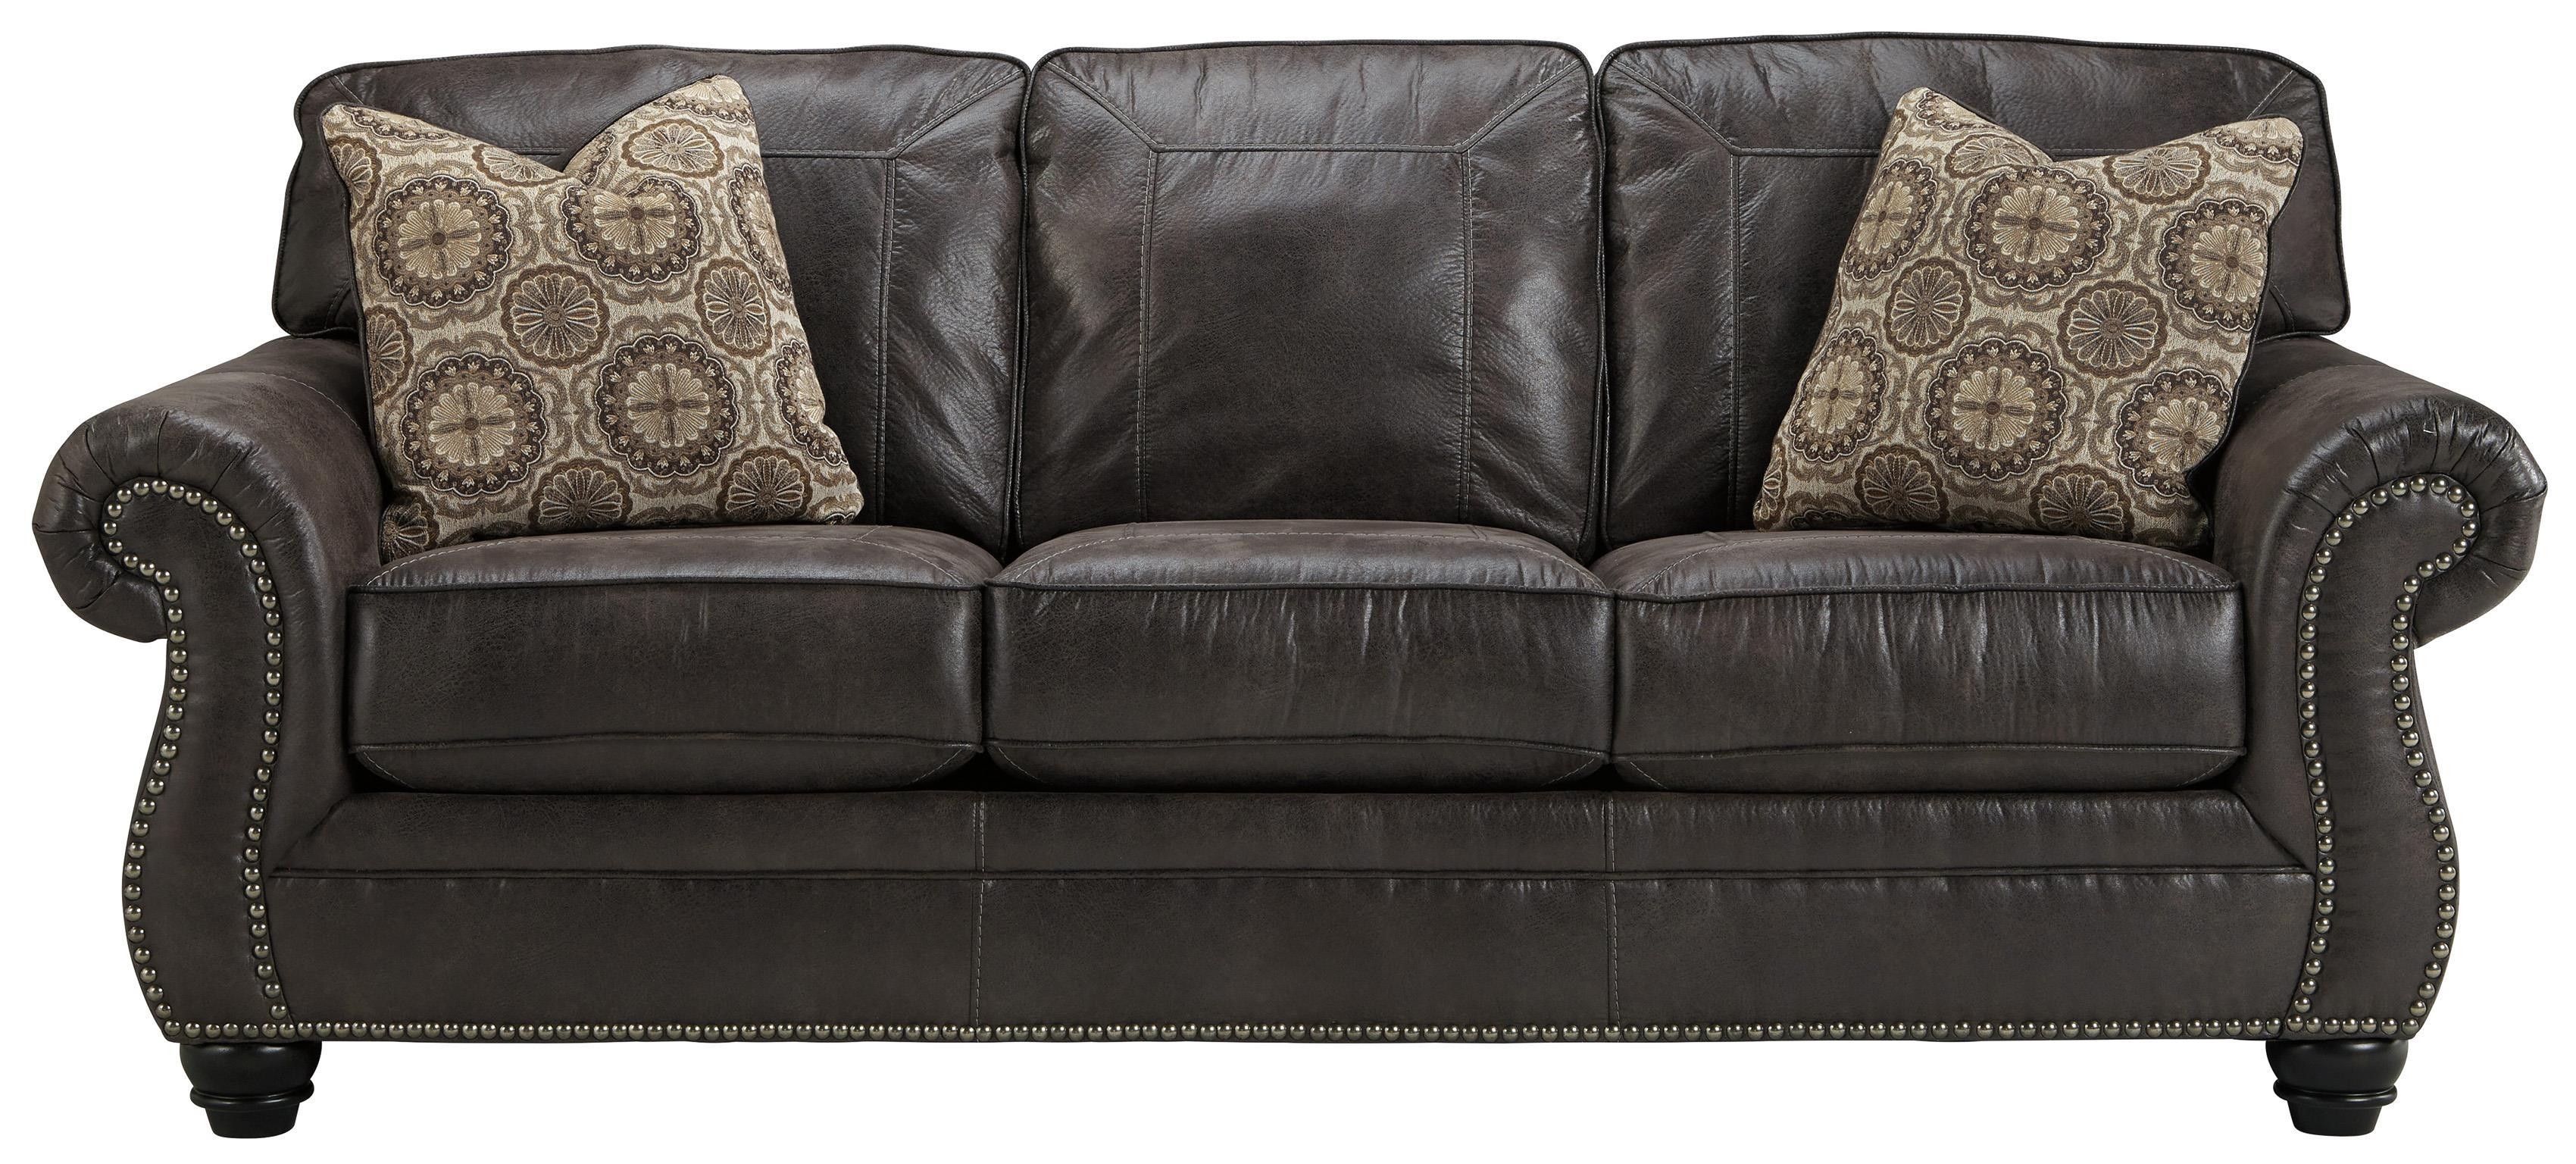 Best ideas about Leather Sofa Sleeper . Save or Pin 20 Inspirations Faux Leather Sleeper Sofas Now.